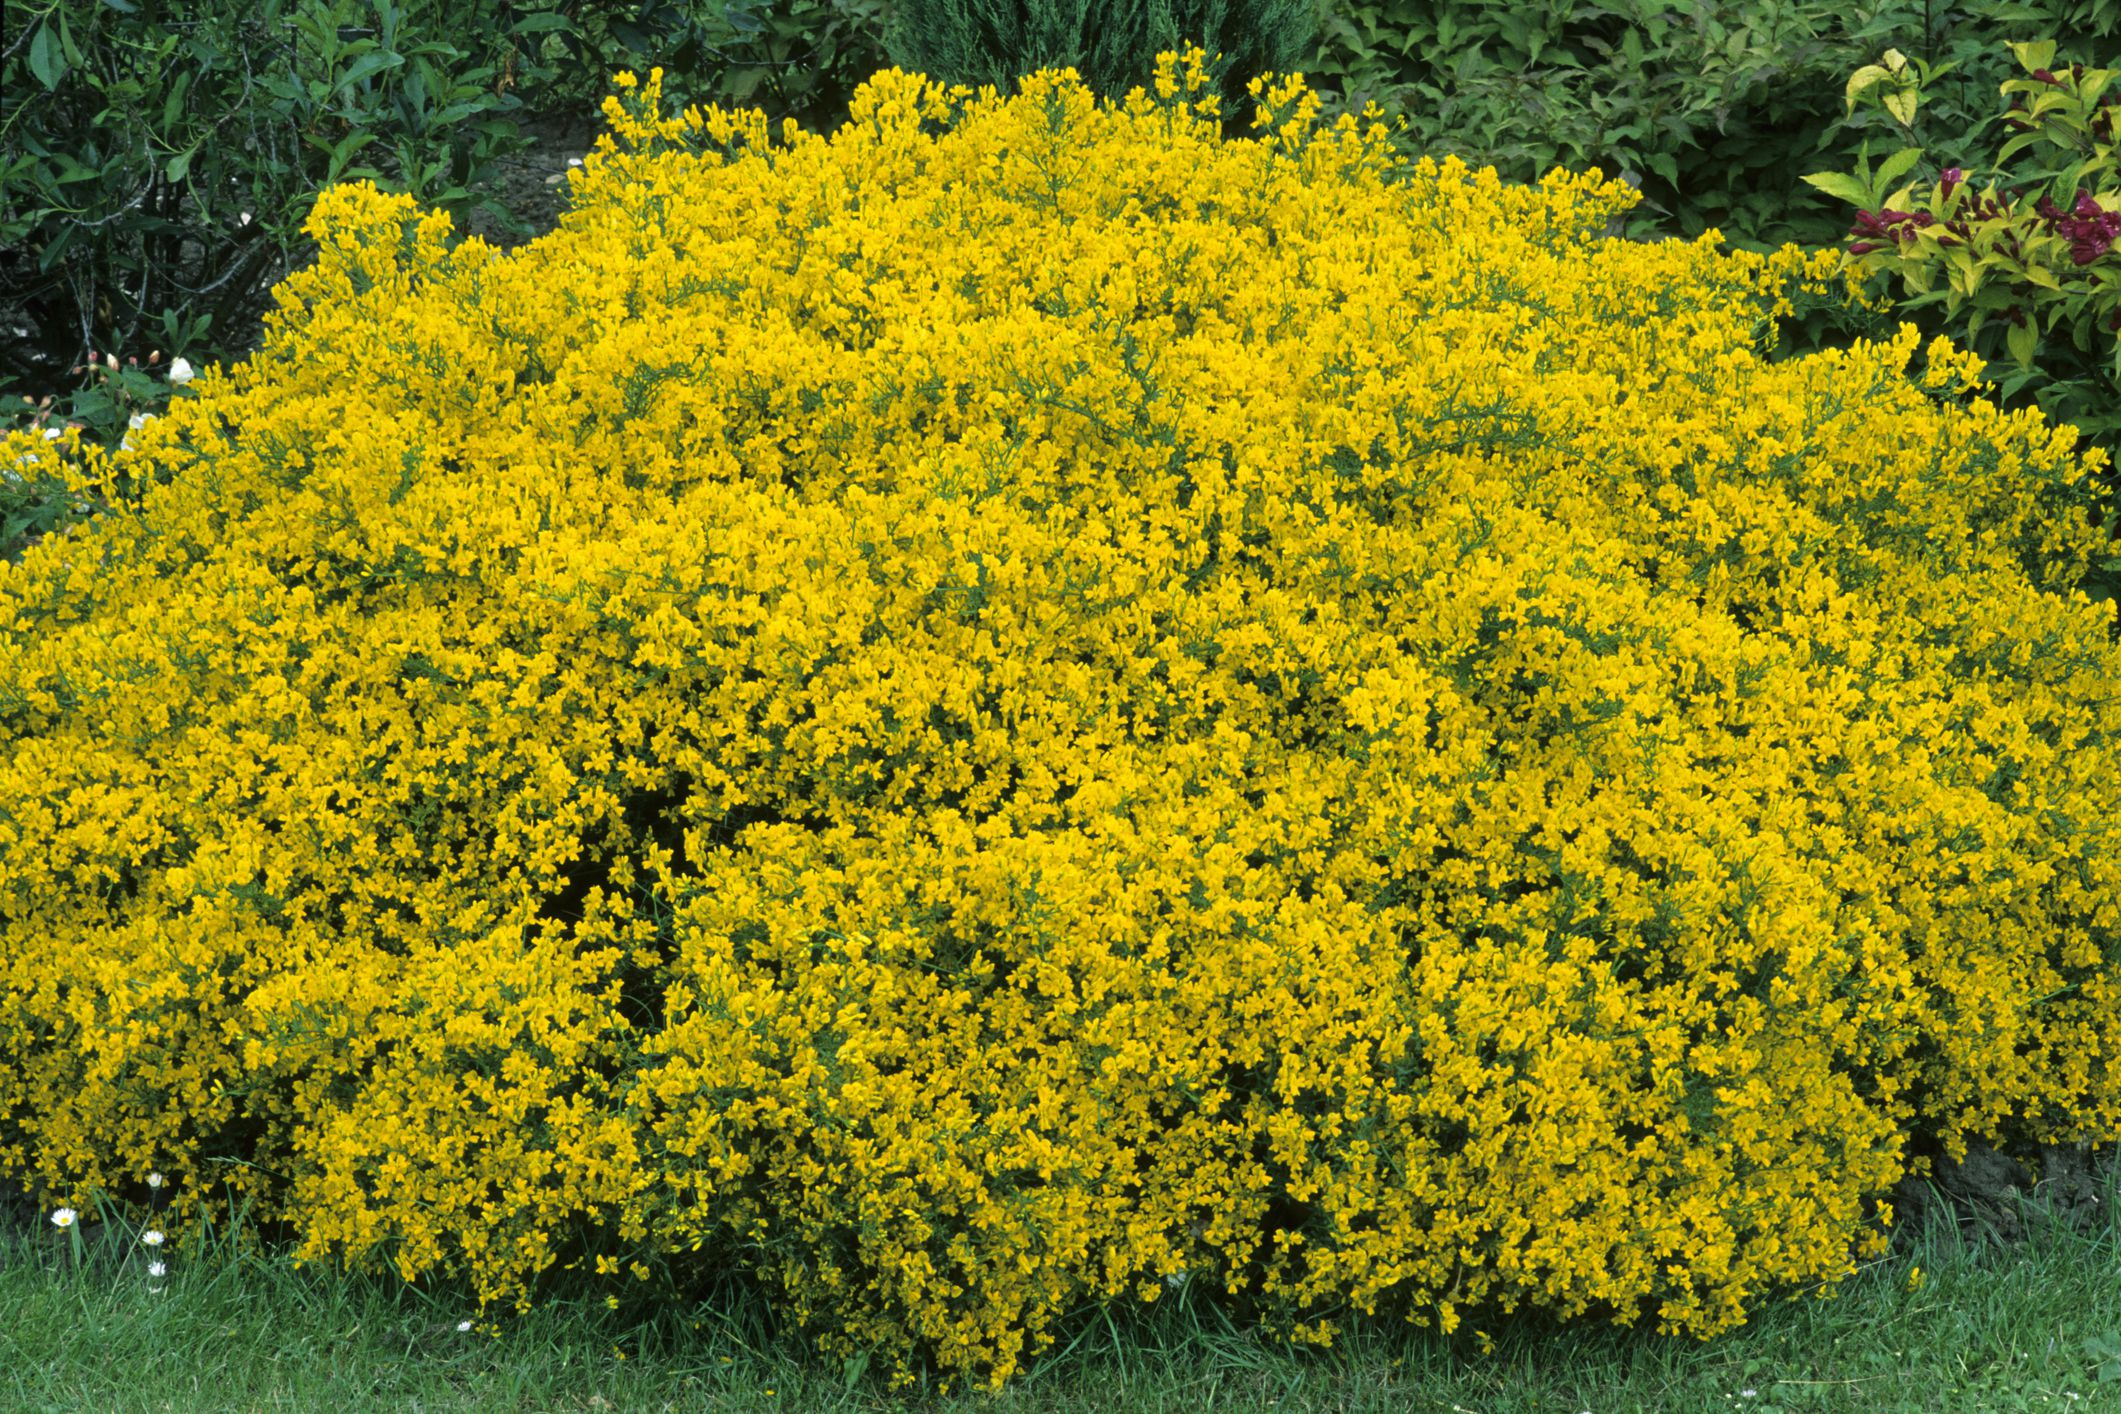 Genista lydia shrub in bloom with yellow flowers